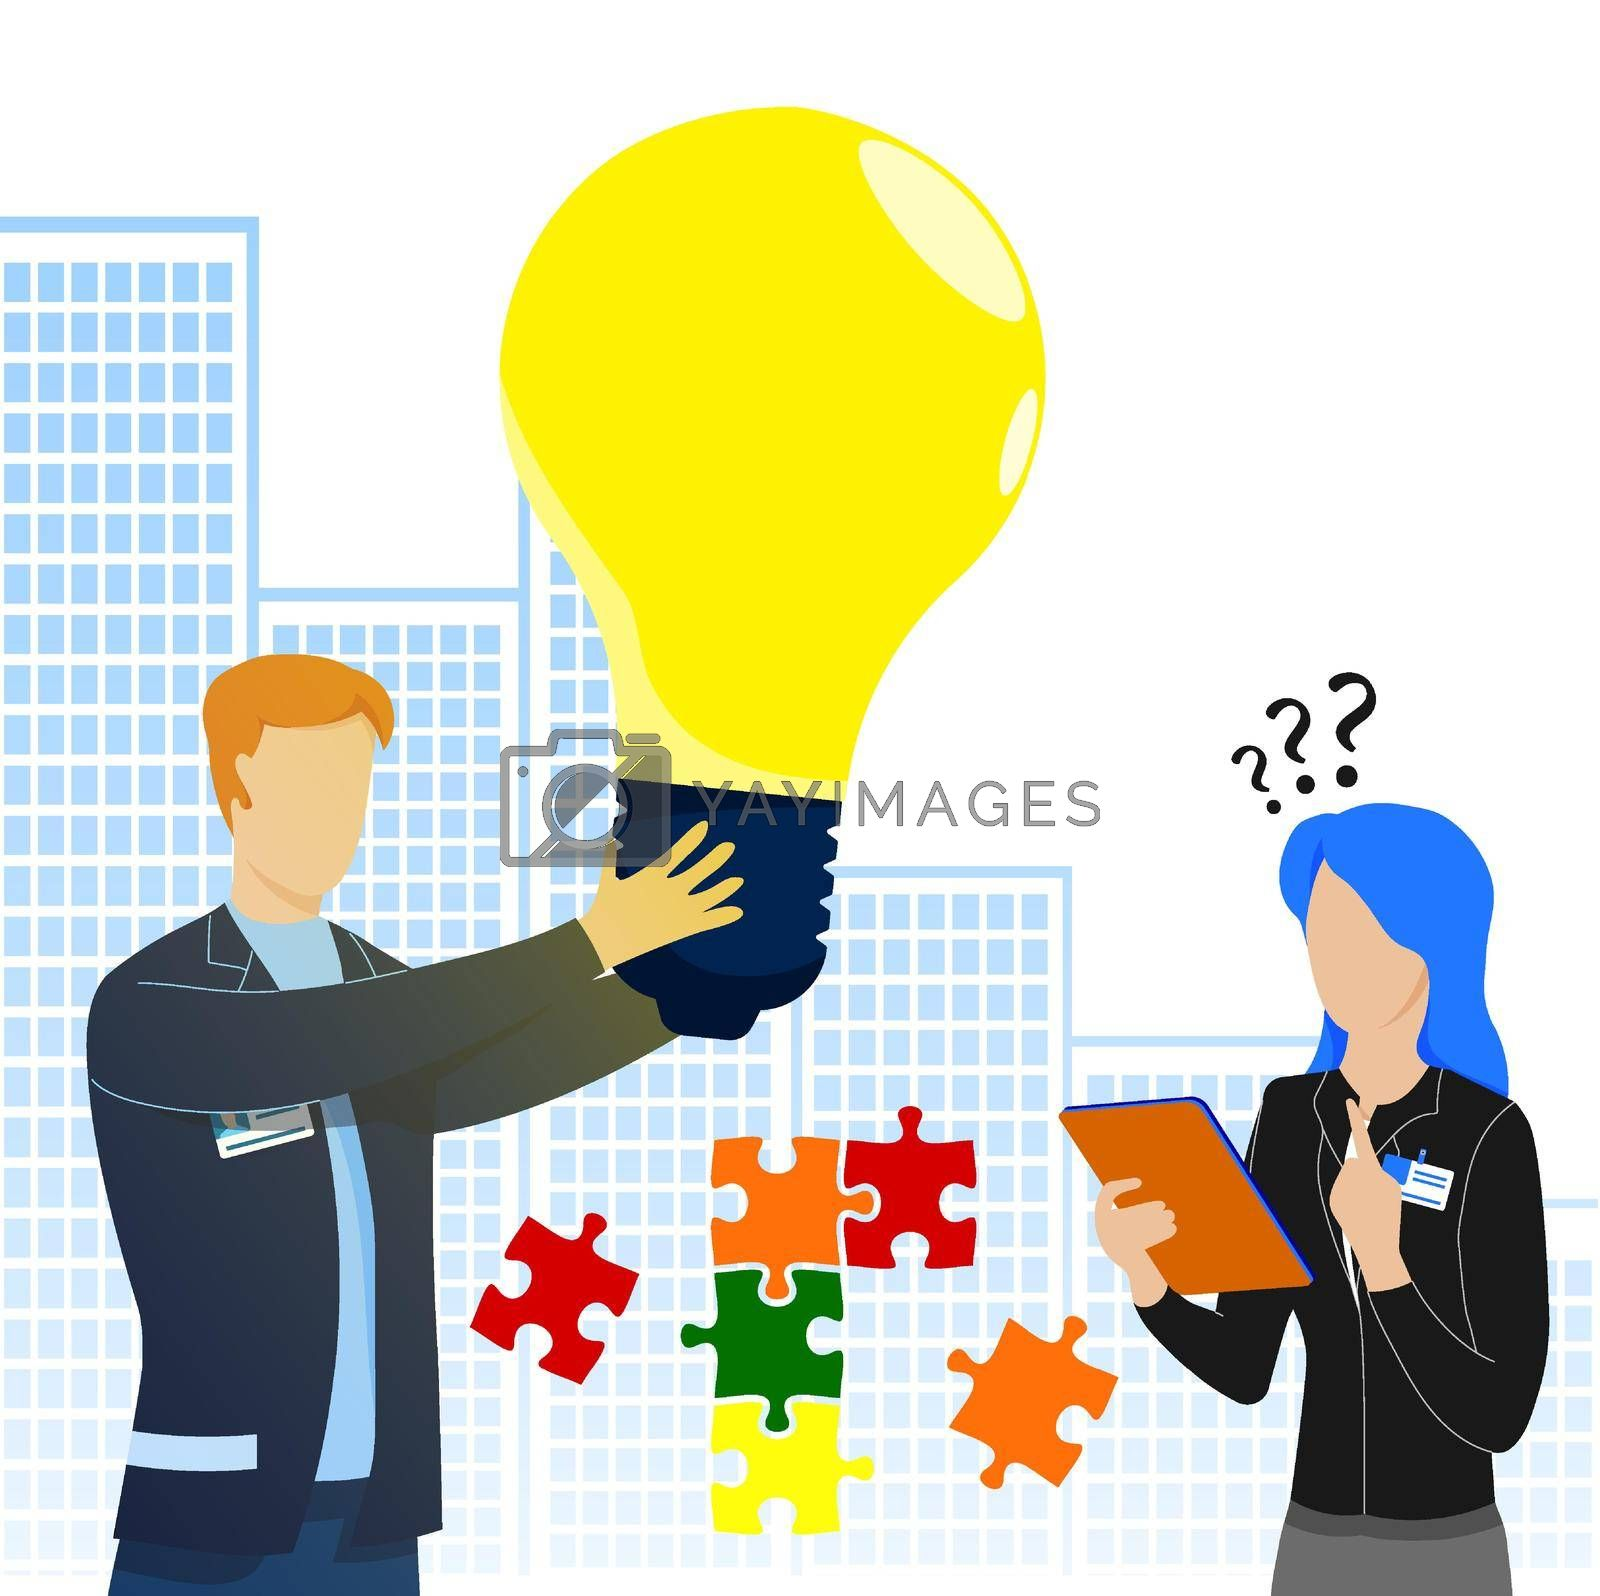 Teamwork. Creative worker holding large glowing light bulb in his hands. New idea, creative thought. Two people solve puzzle, jigsaw pieces together. Work of people in team for common result. Vector